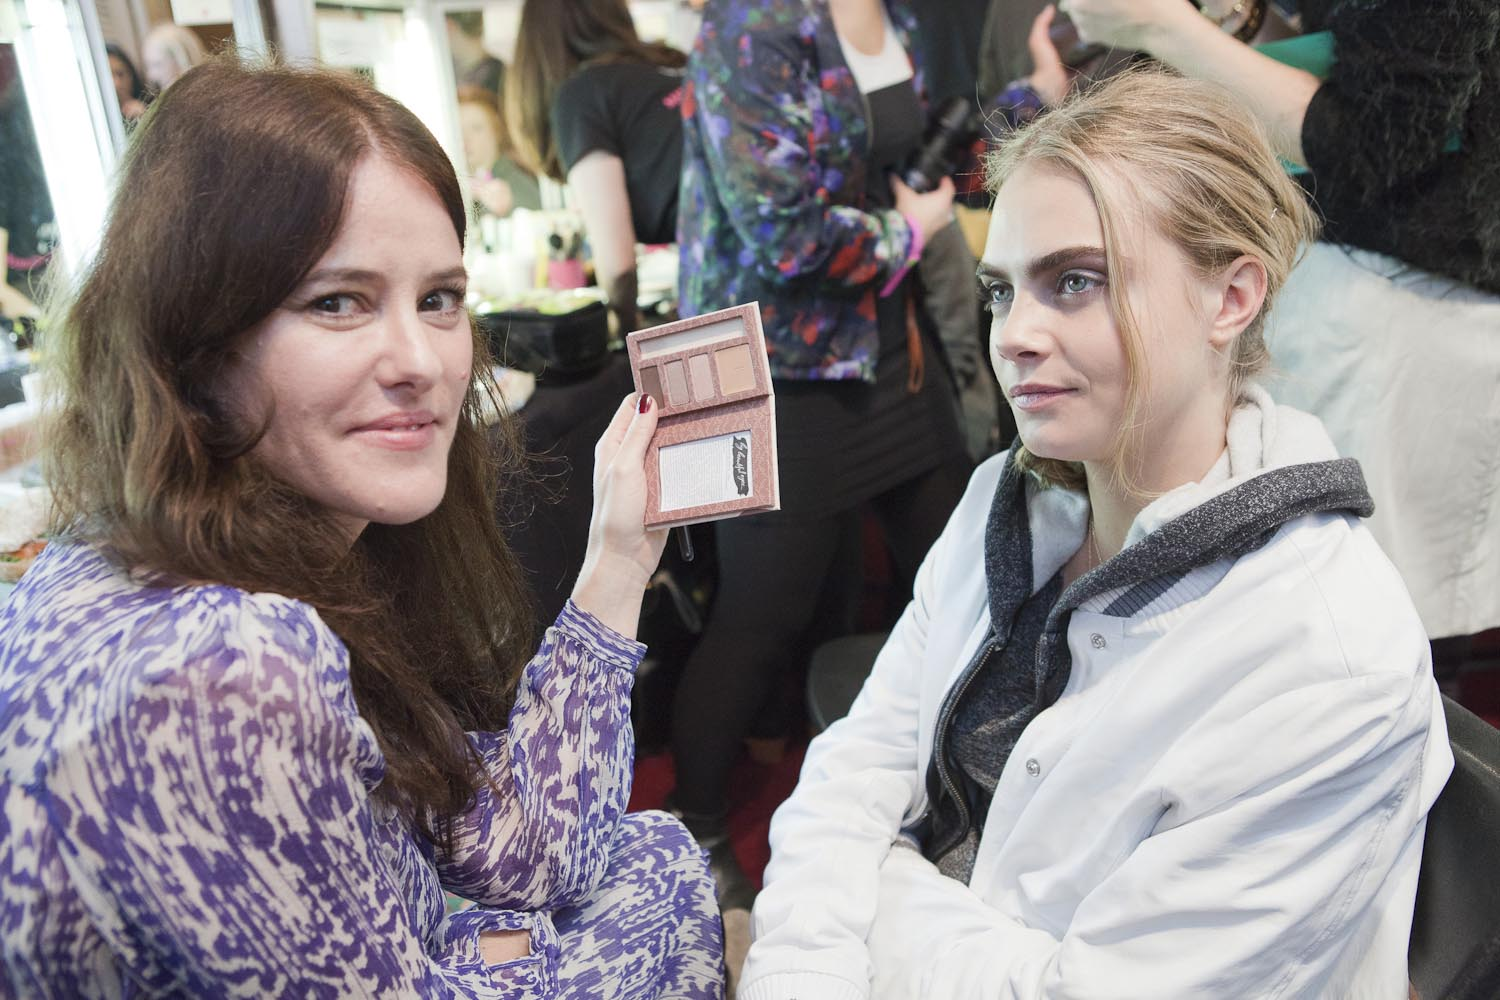 Talented makeup artist, Lisa Eldridge complete Benefit look for model, Cara Delevigne